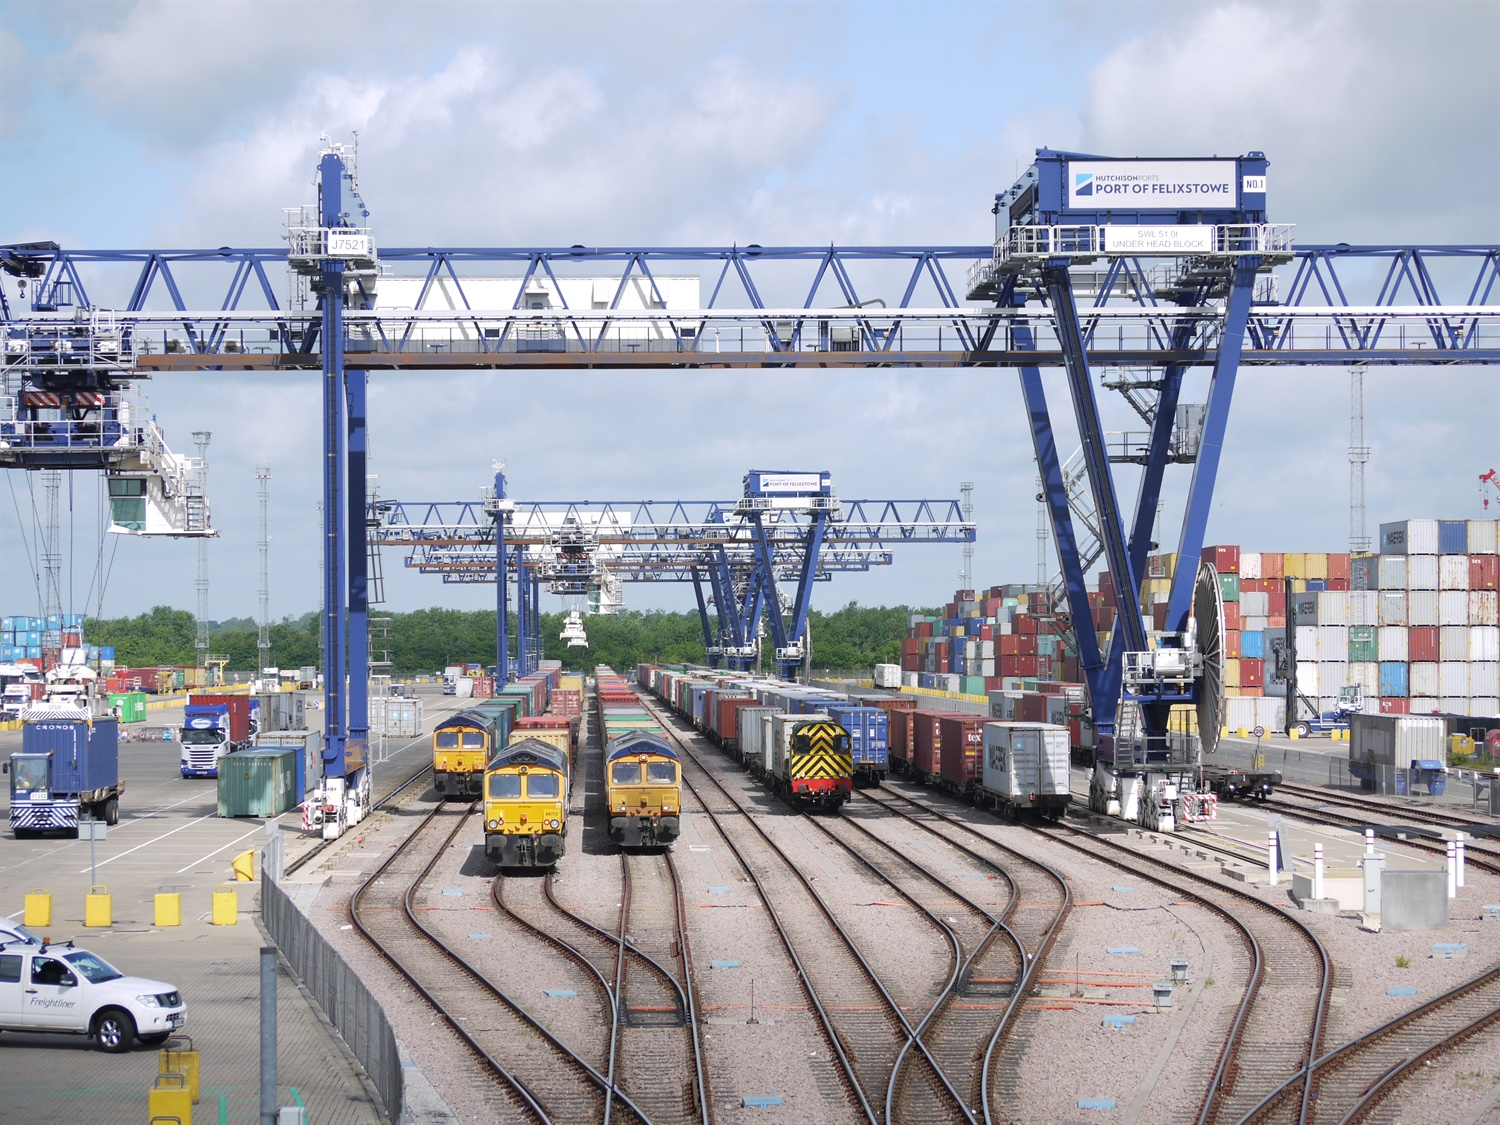 Go-ahead for Felixstowe branch line upgrade to boost freight capacity